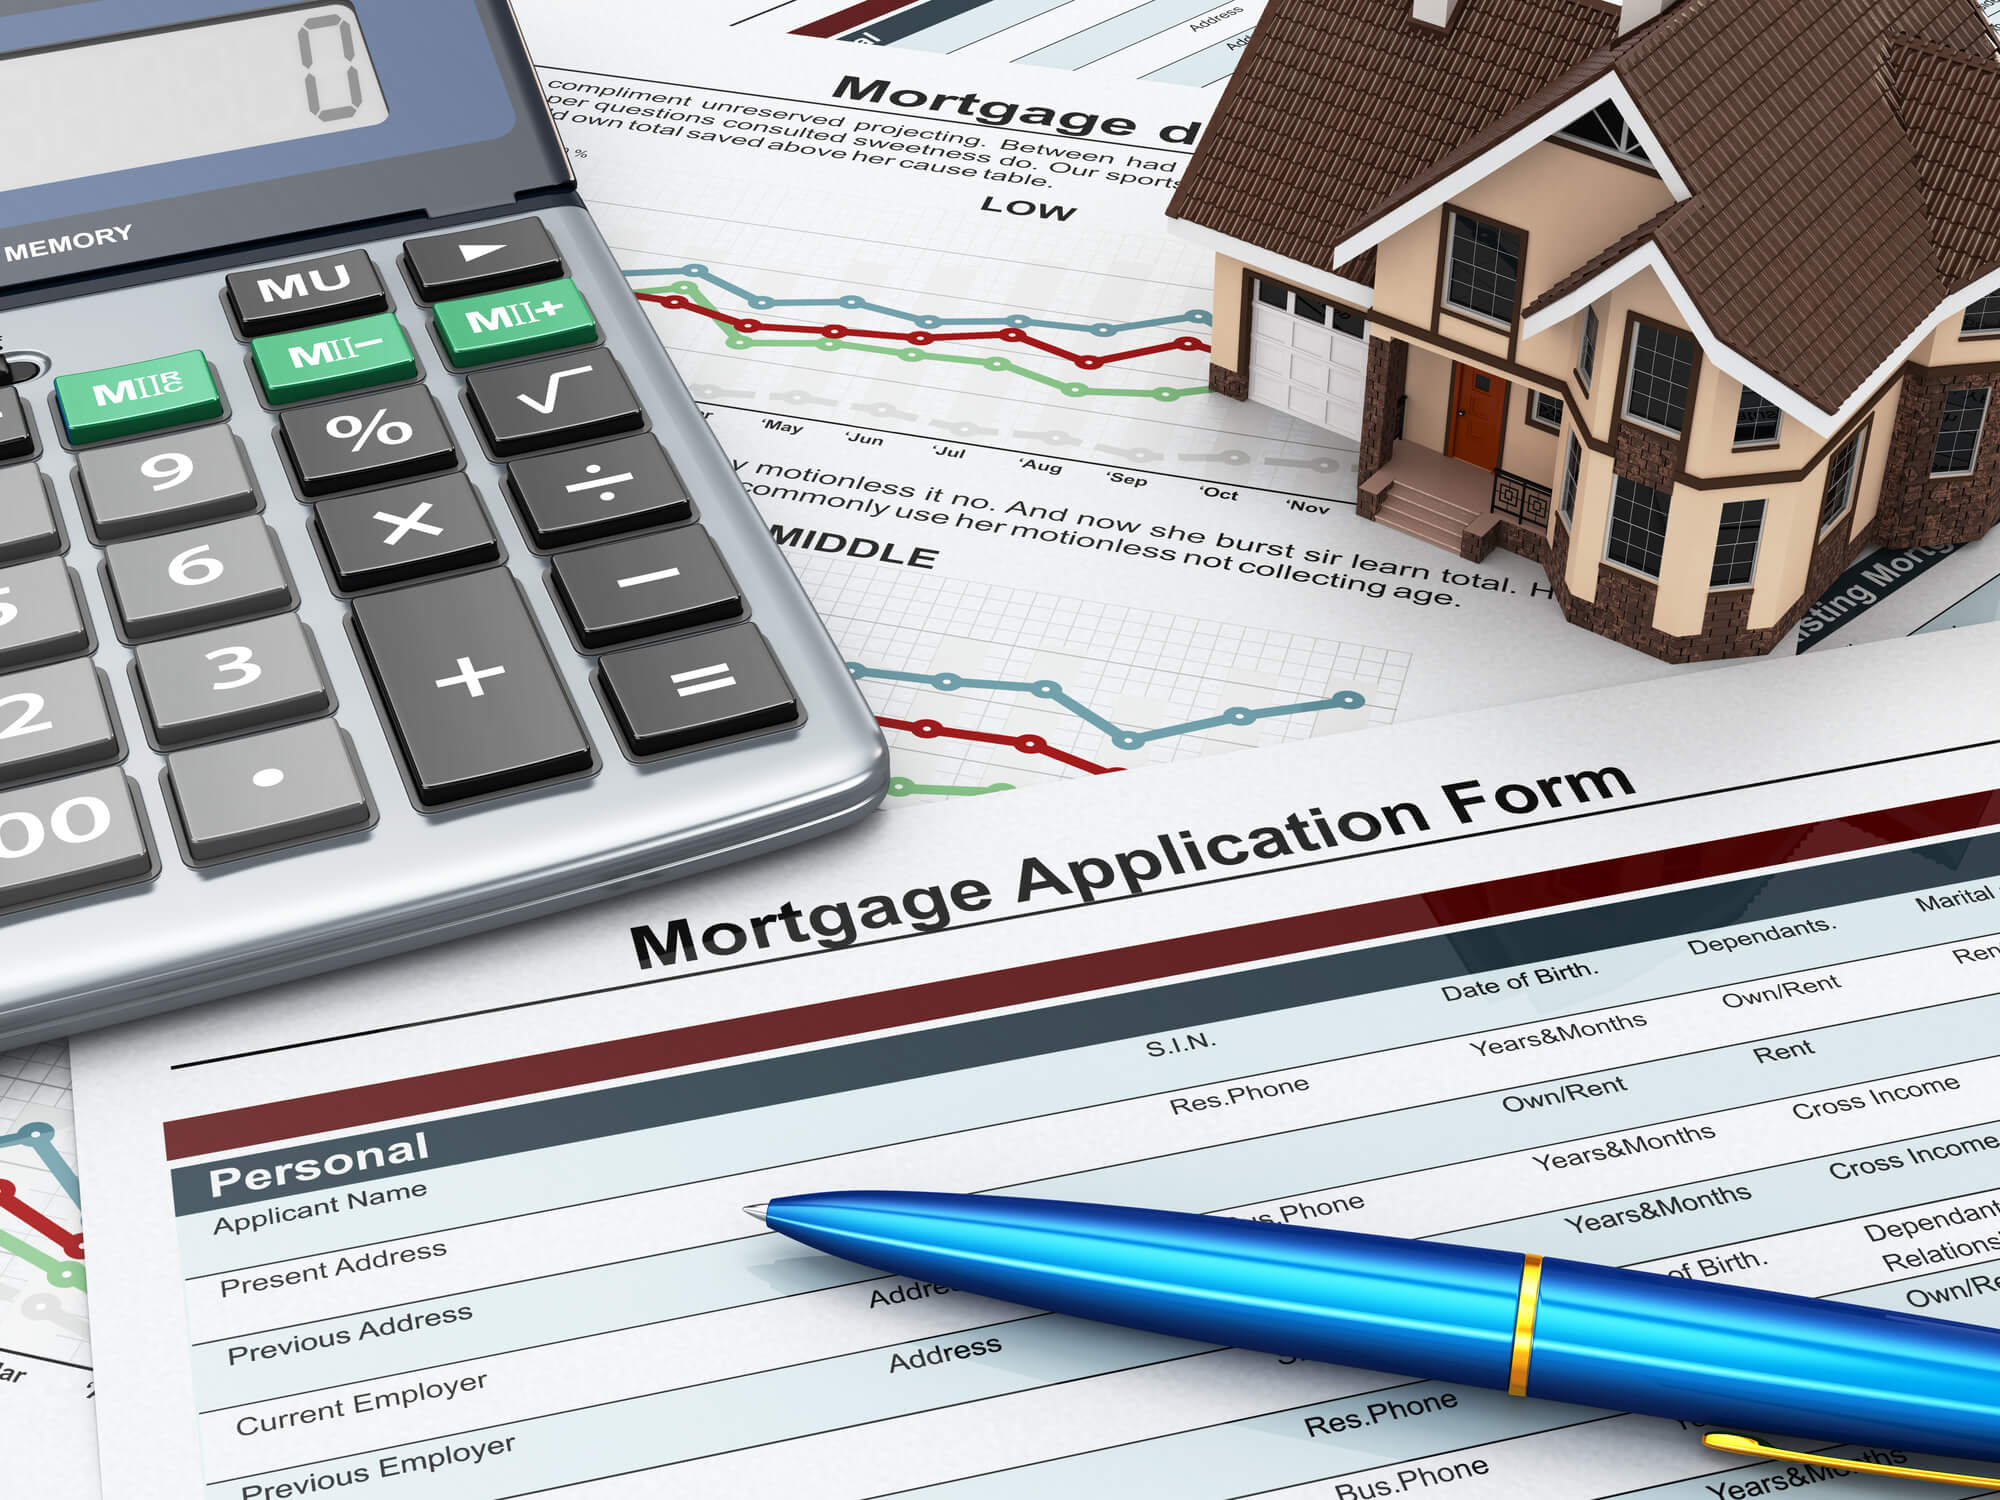 Mortgage application form.